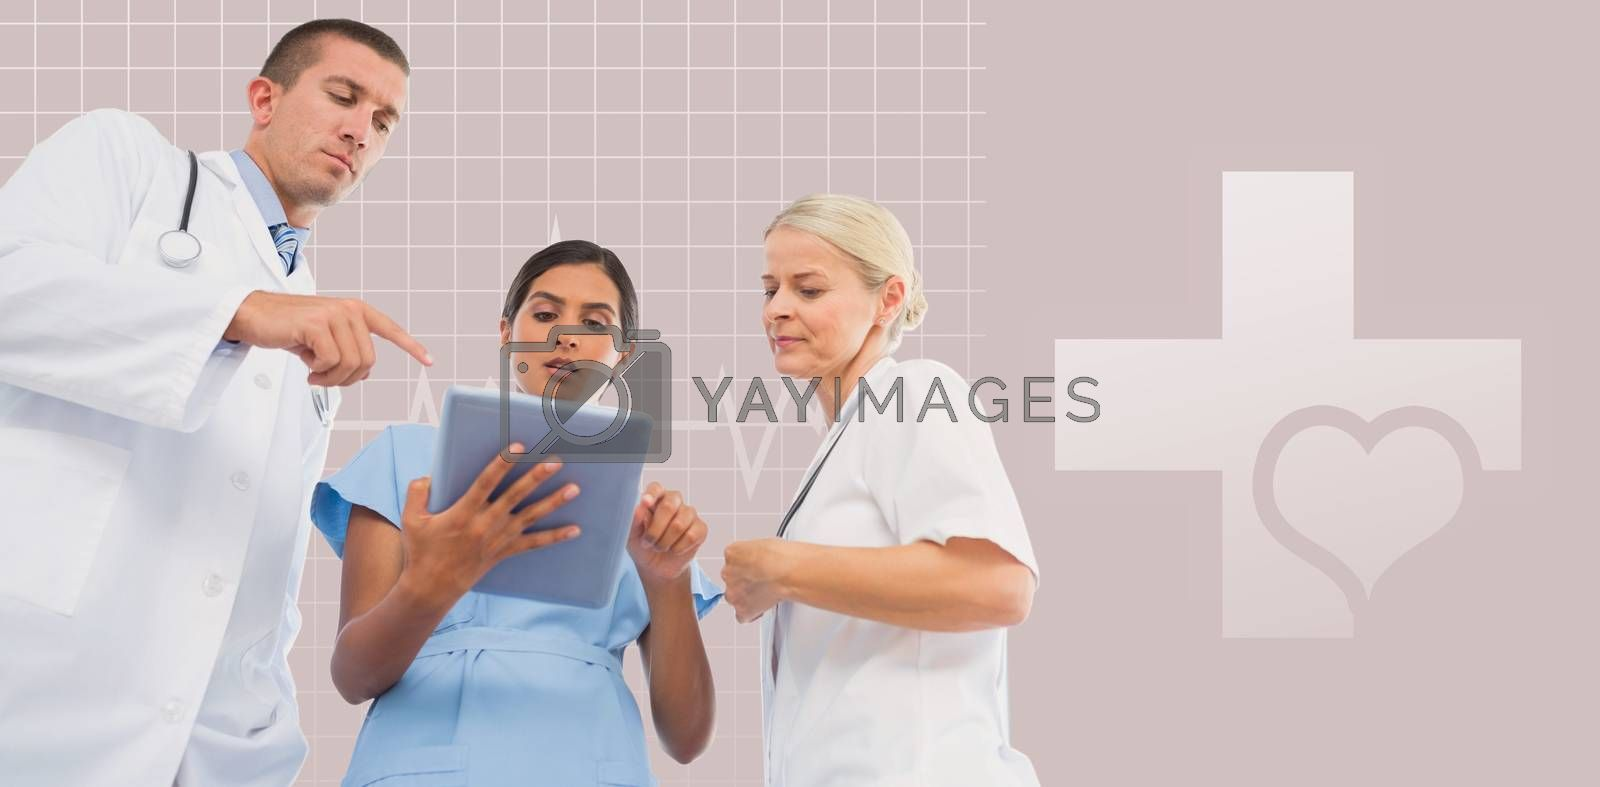 Doctors looking together at tablet against green background